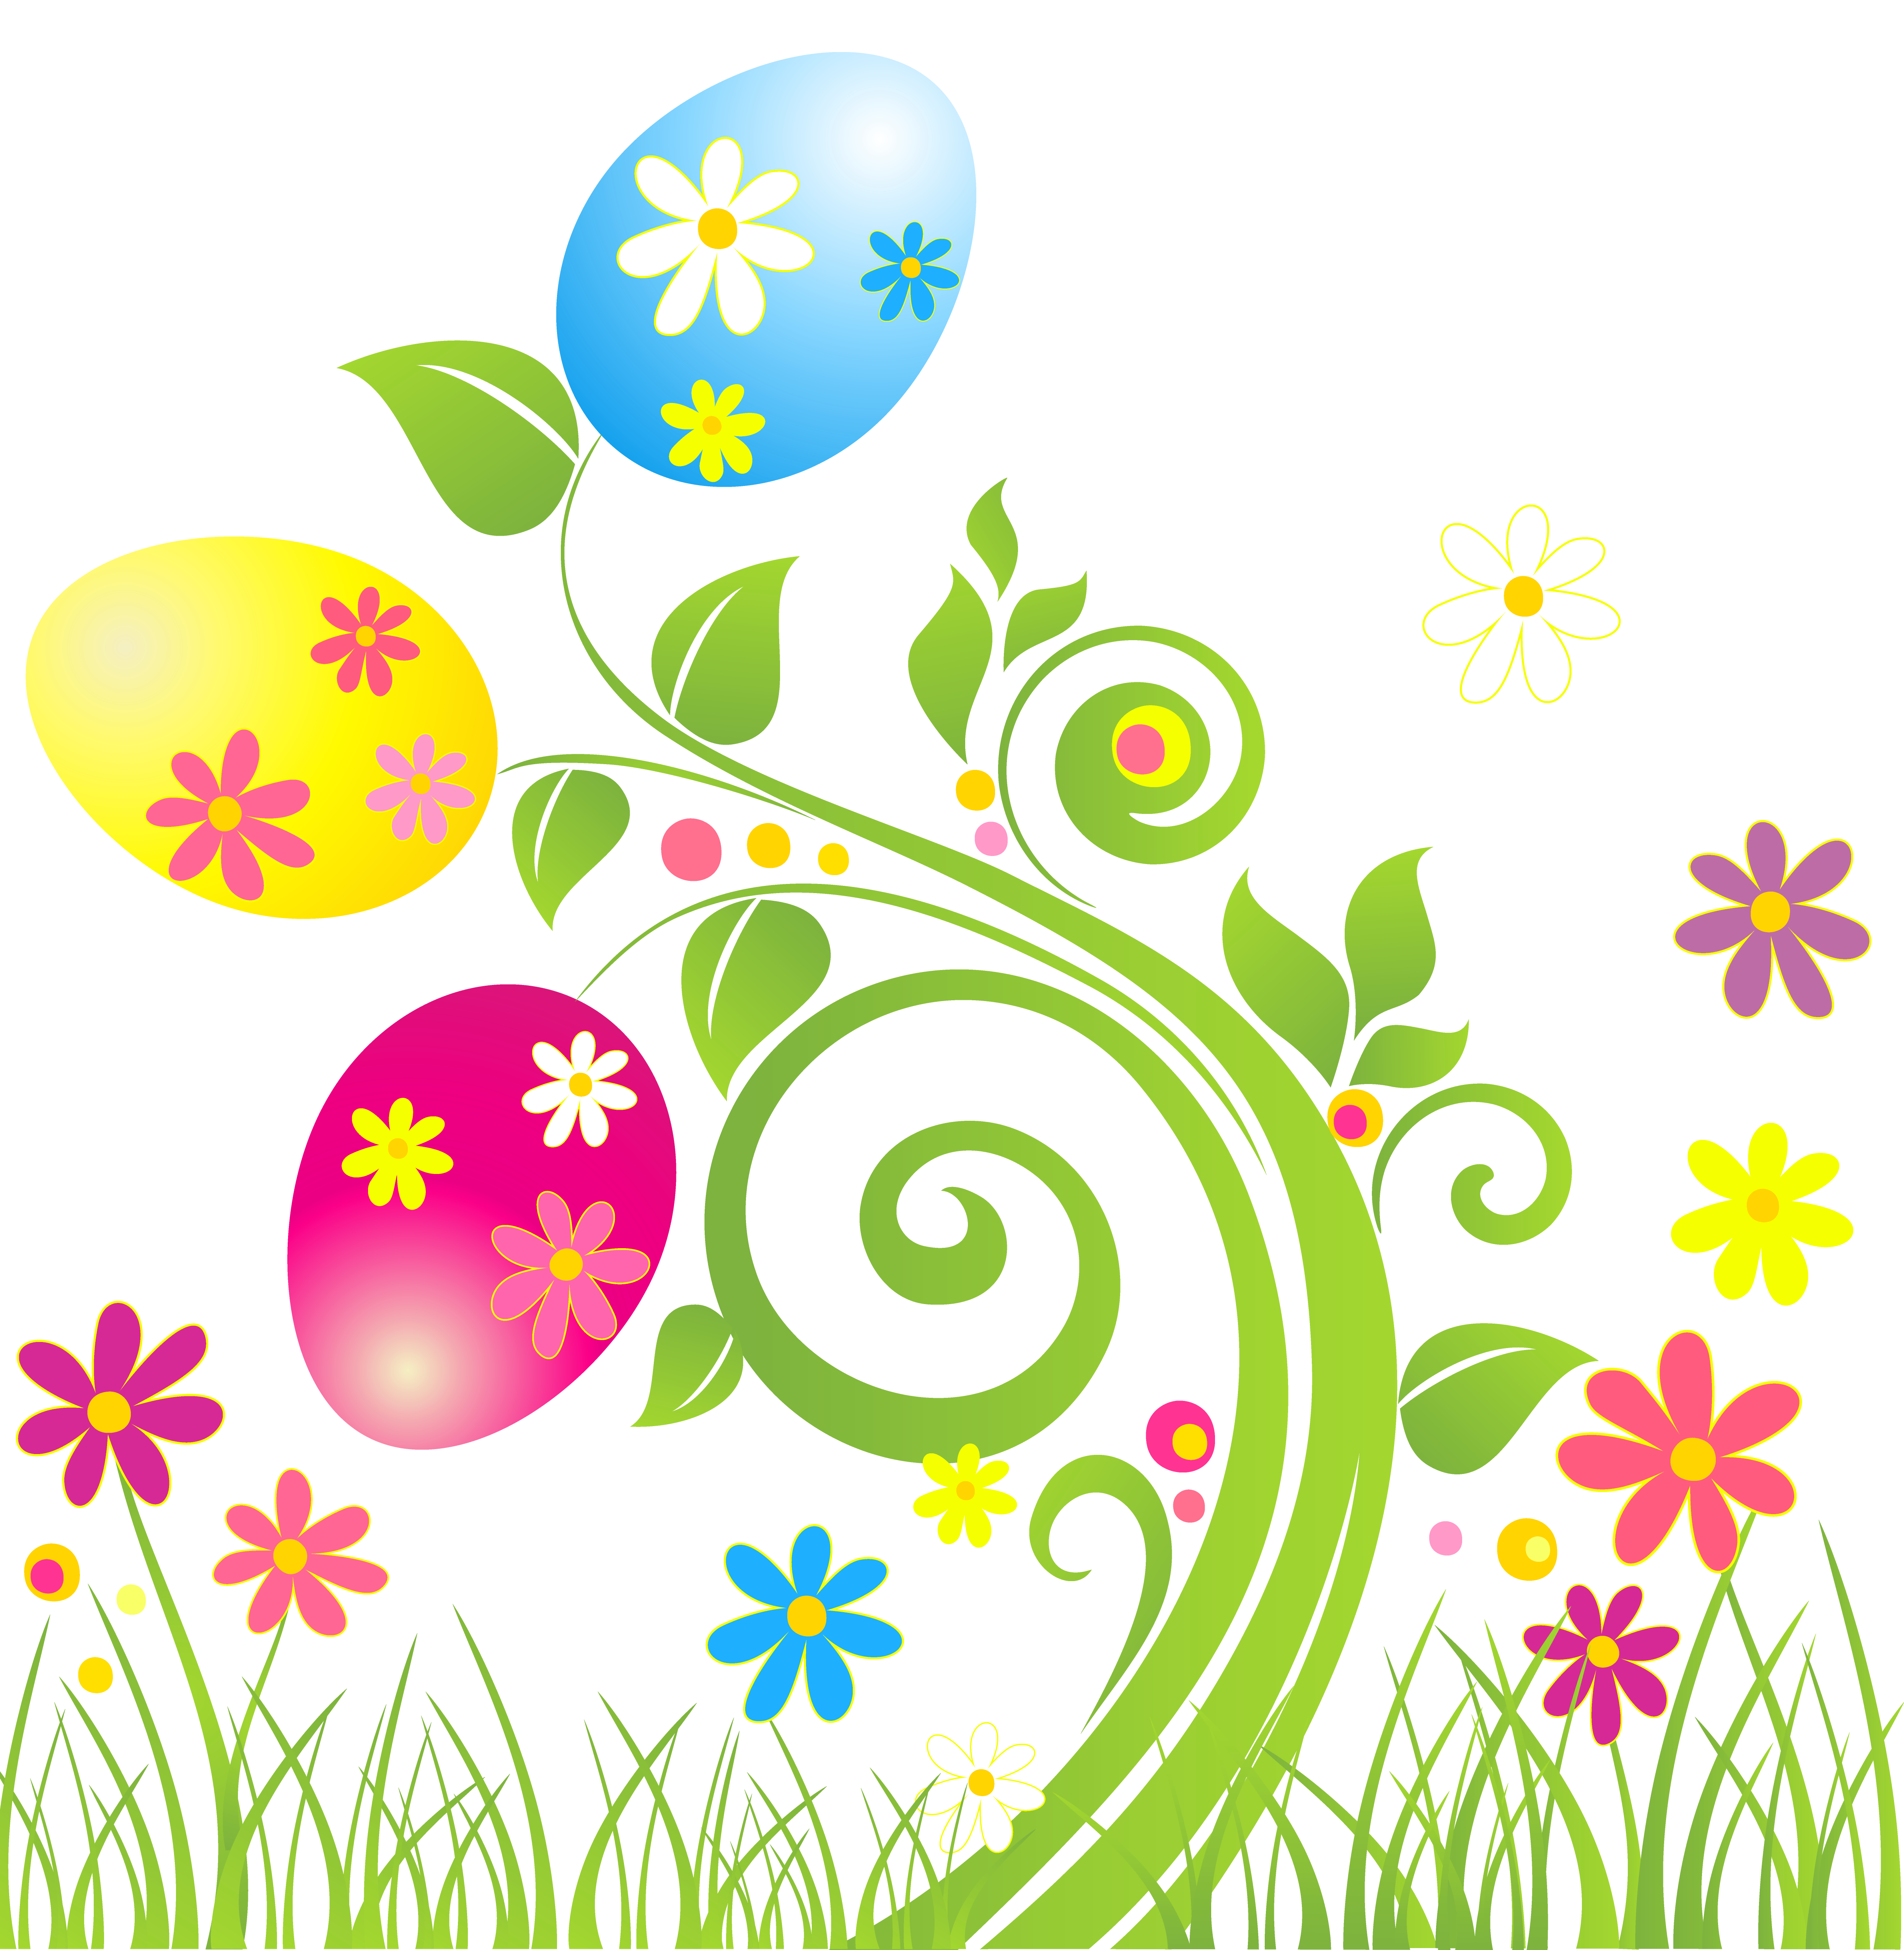 Easter clip art png. Egg decoration with flowers